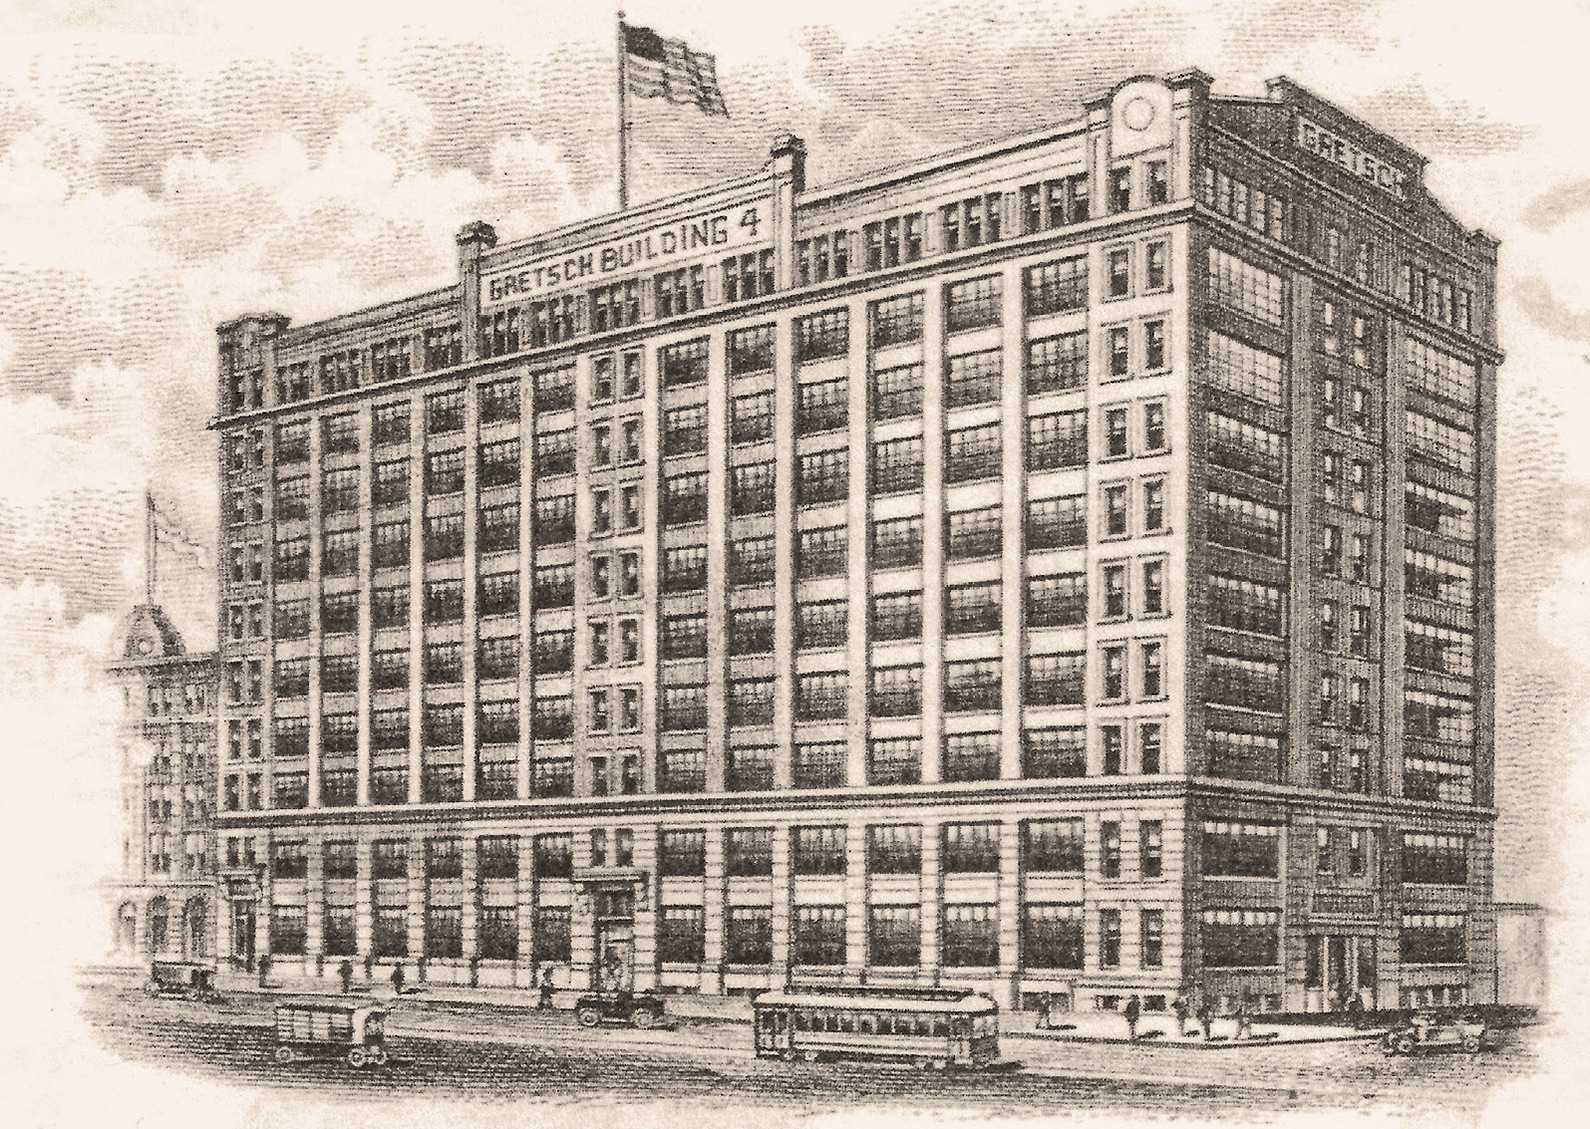 Gretsch Building Engraving-60 Broadway.jpg